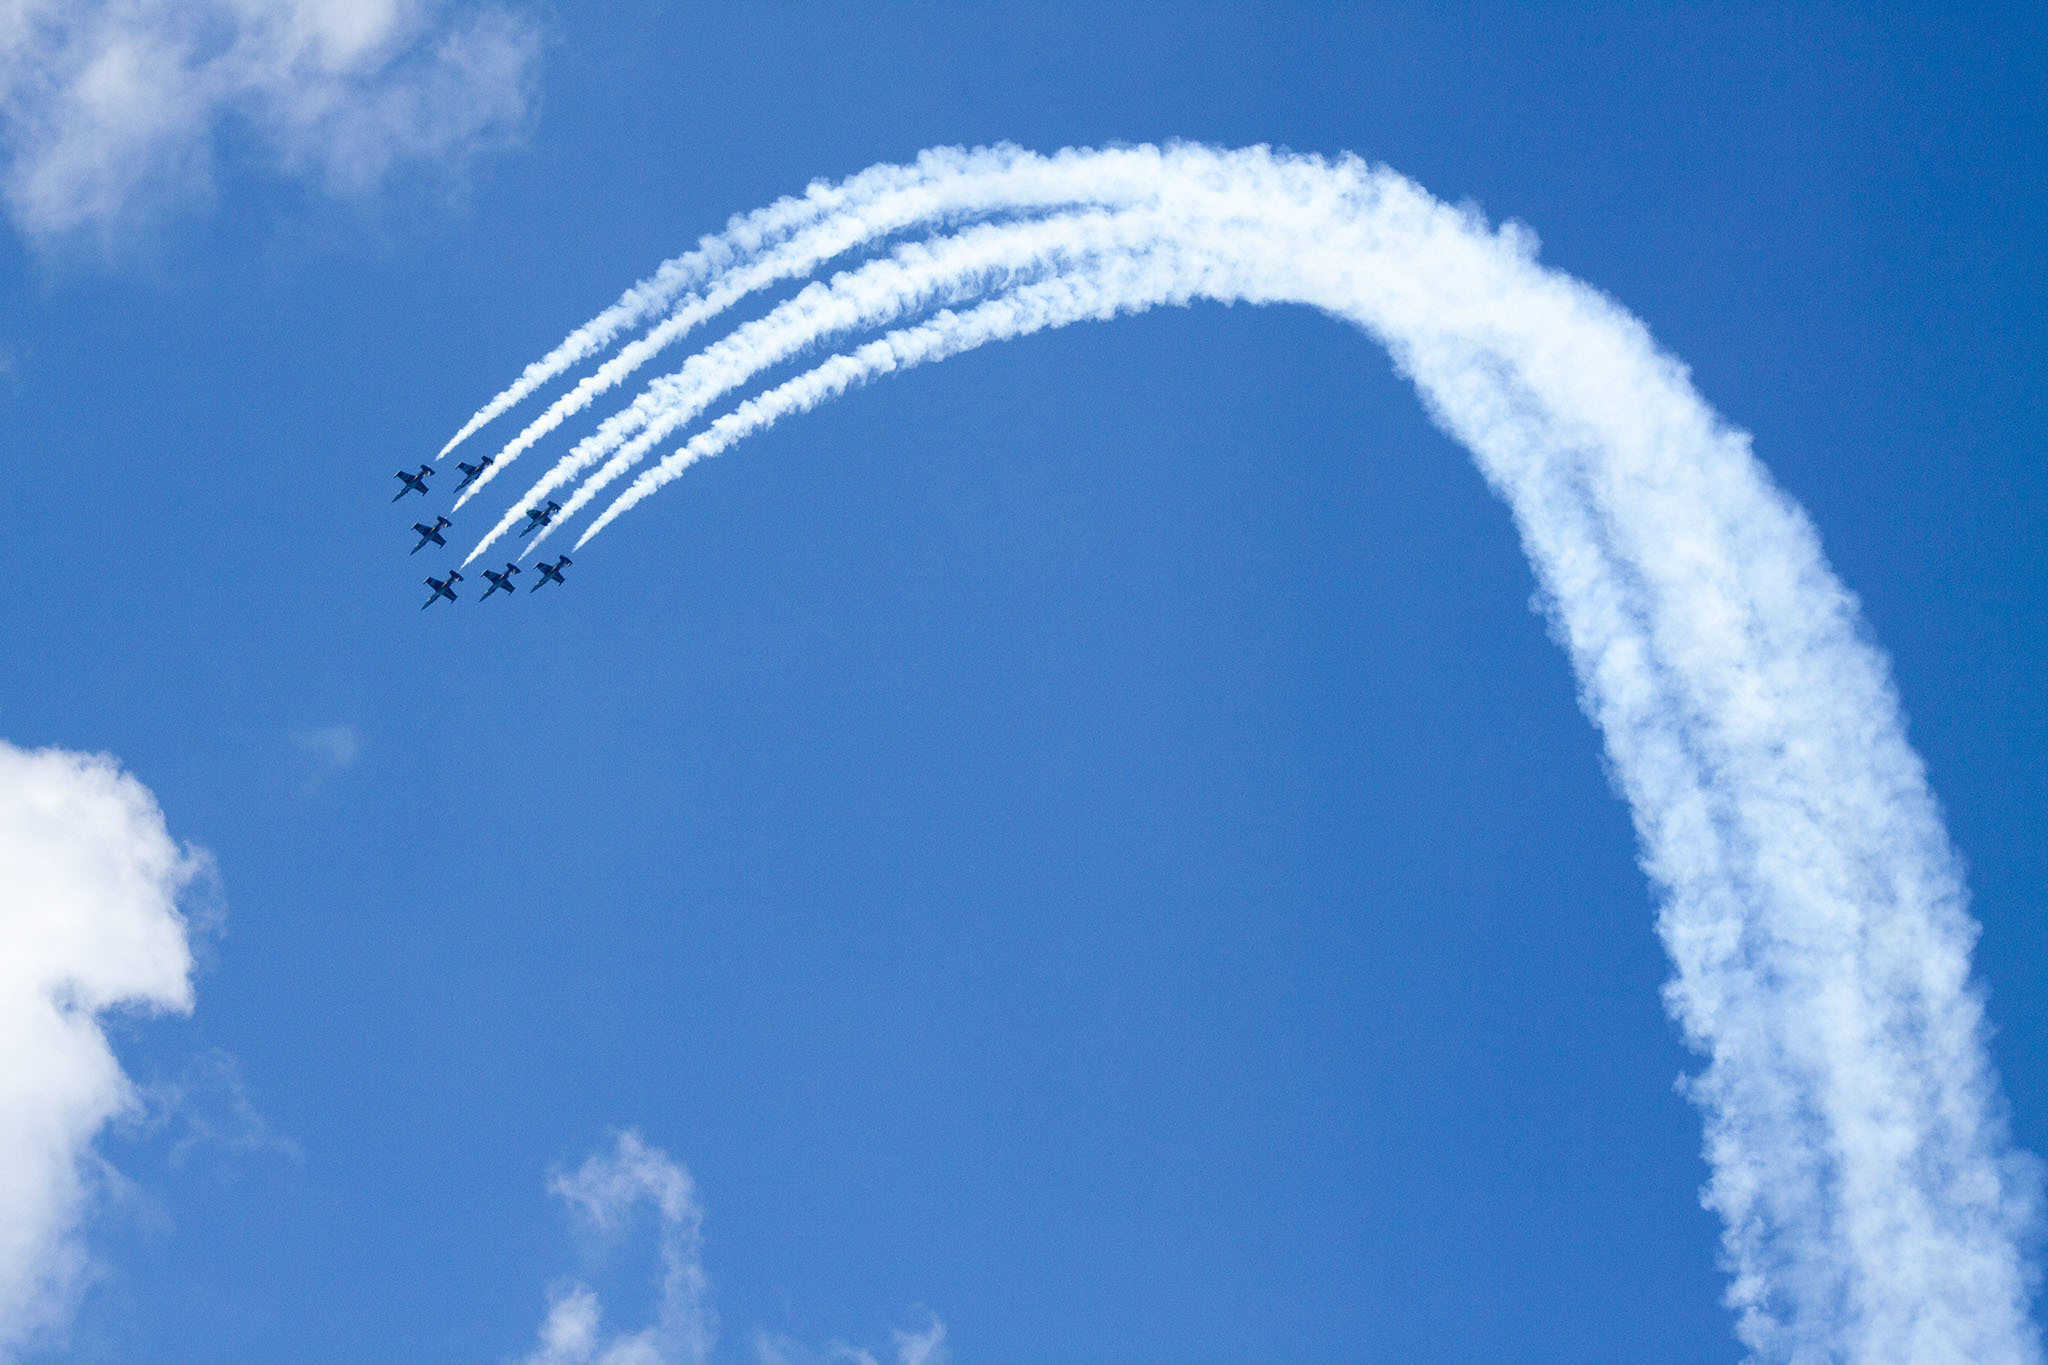 Photos from the Chicago Air and Water Show